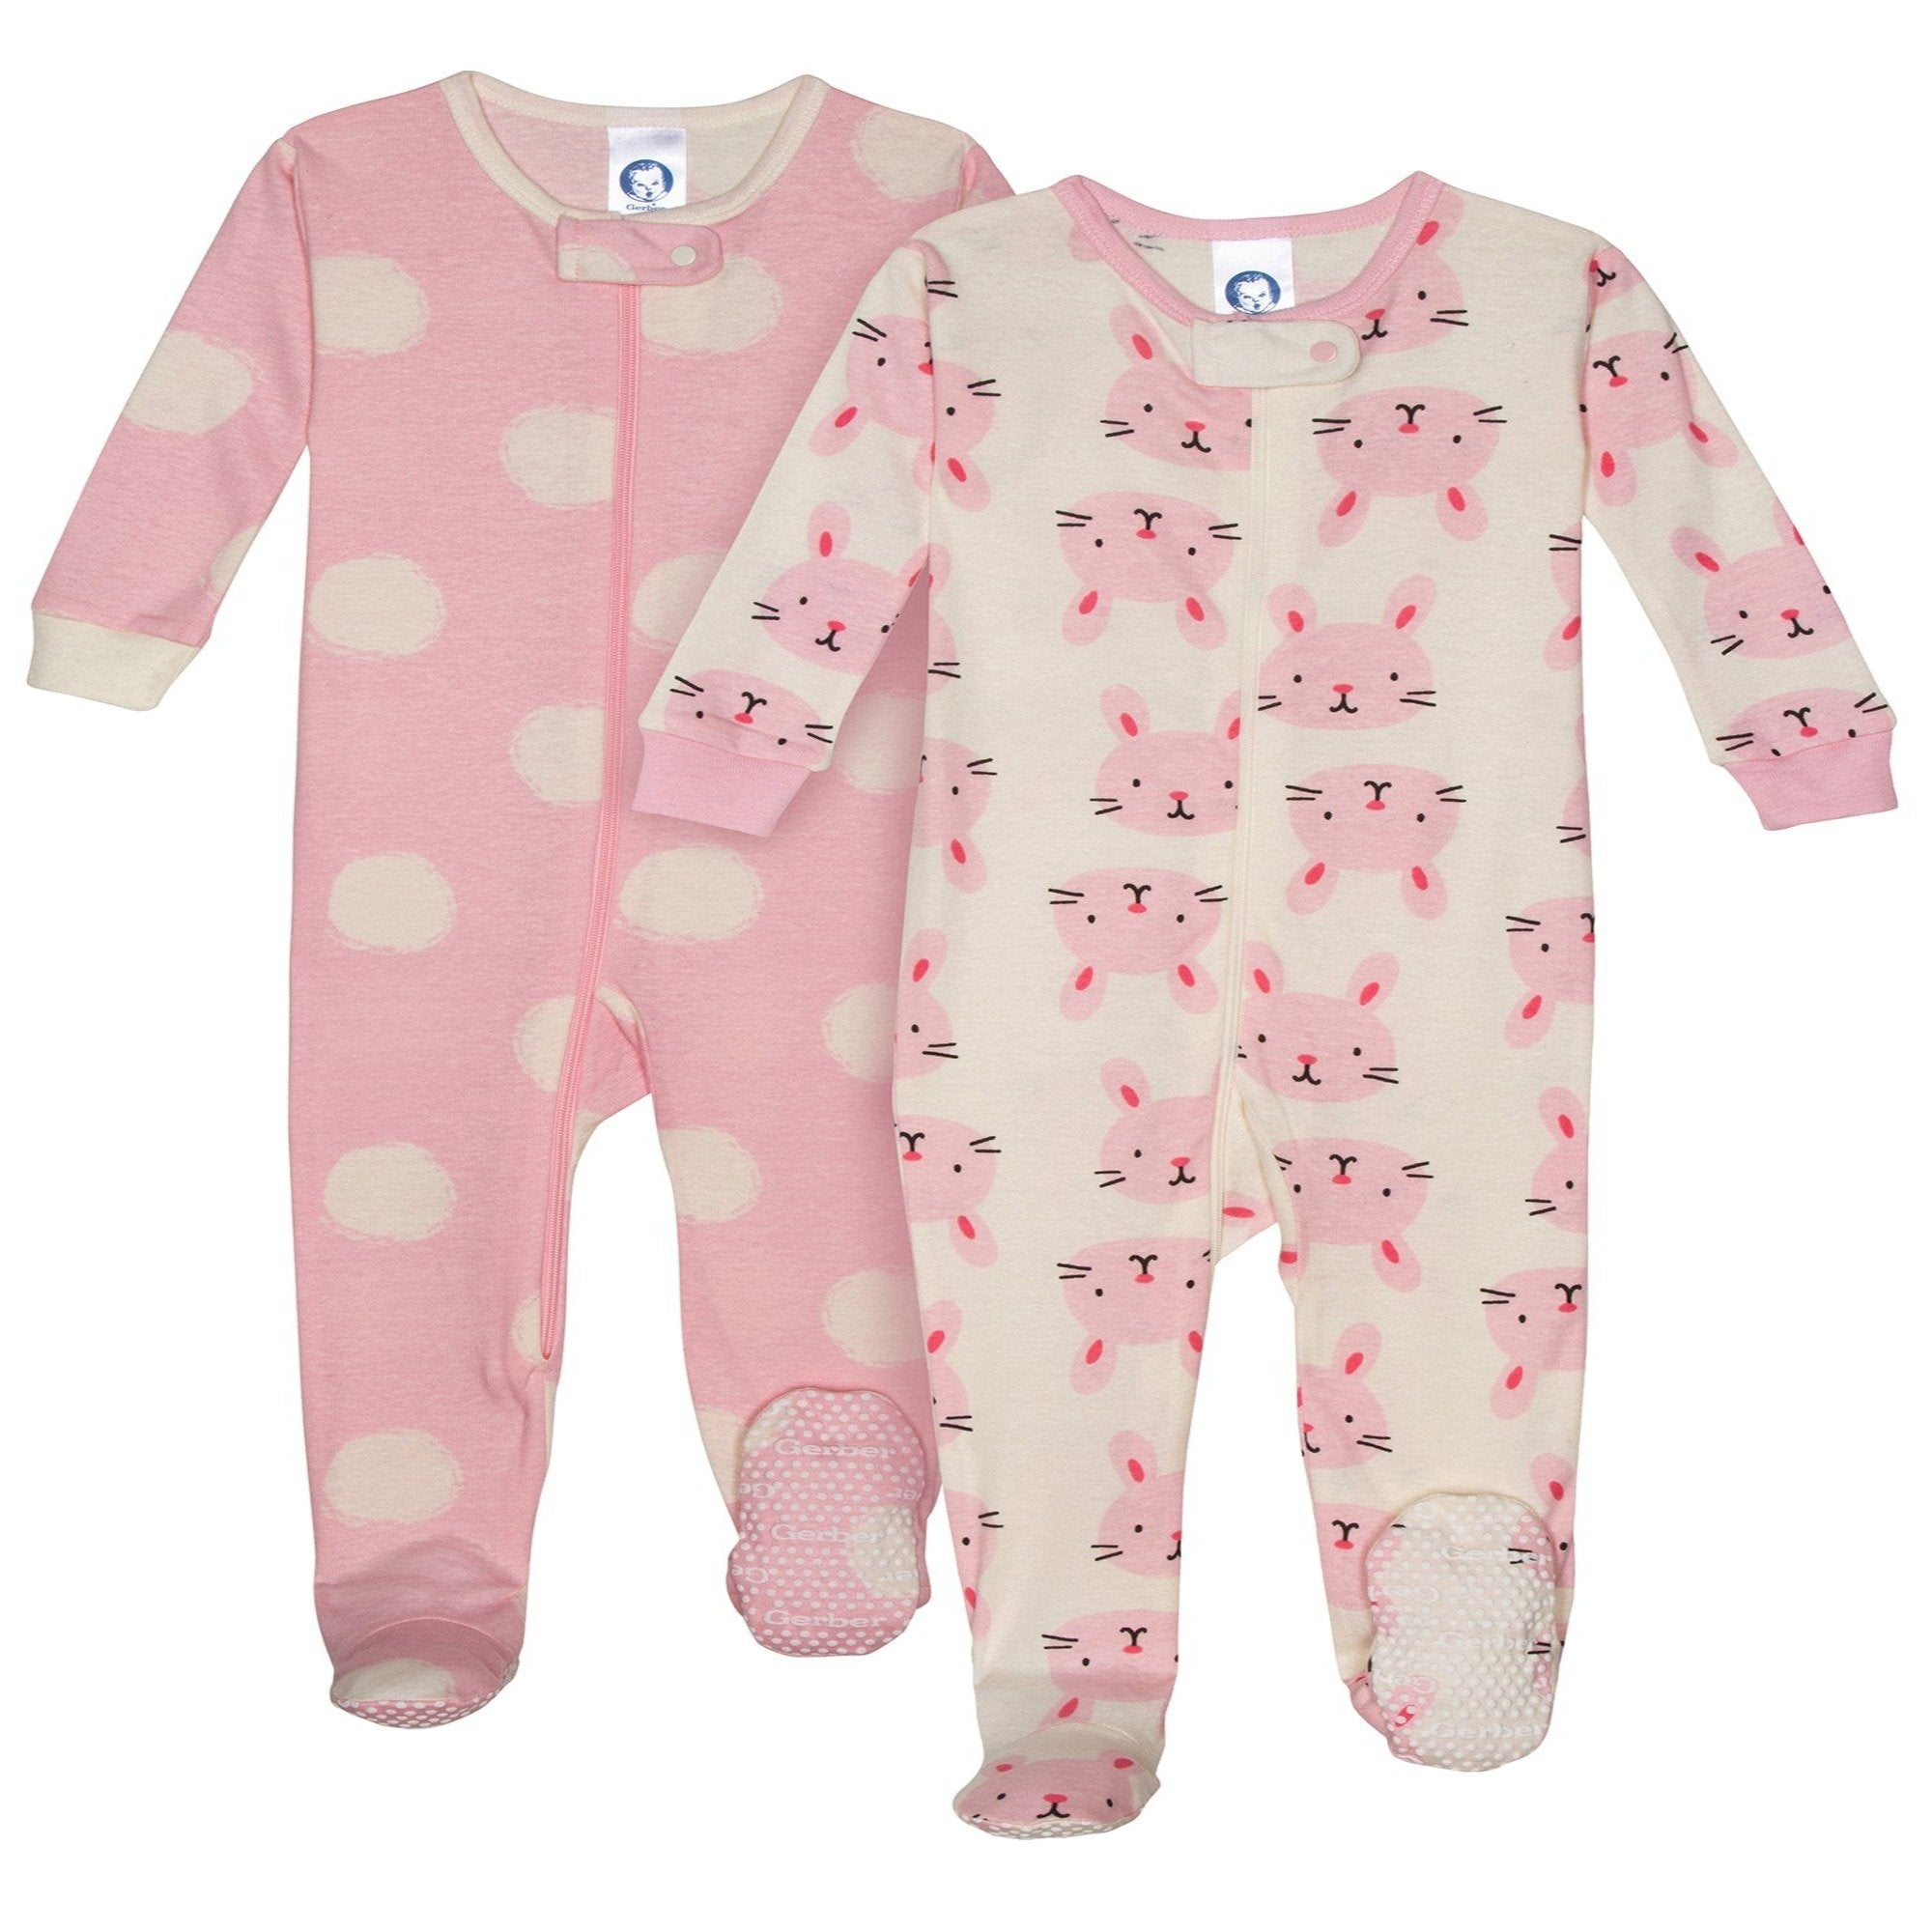 2-pack Girls Organic Footed Unionsuit - Bunny